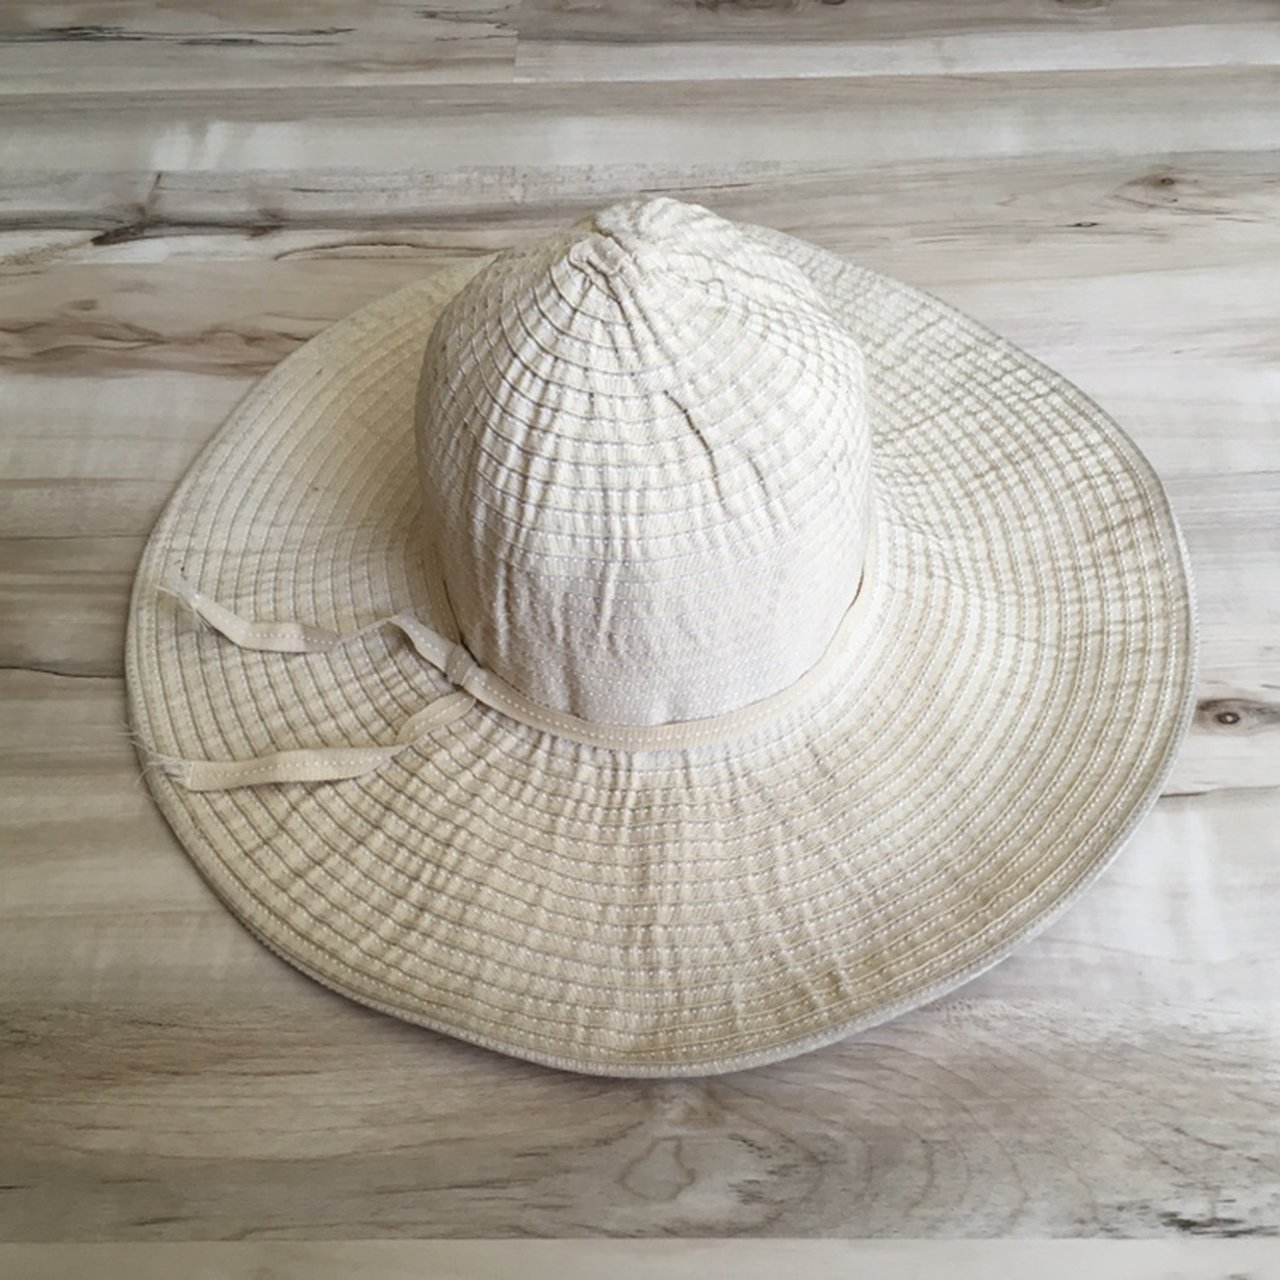 a9fa8bd5ebb Columbia Global Adventure Packable Sun Hat Condition  6 10 - Depop